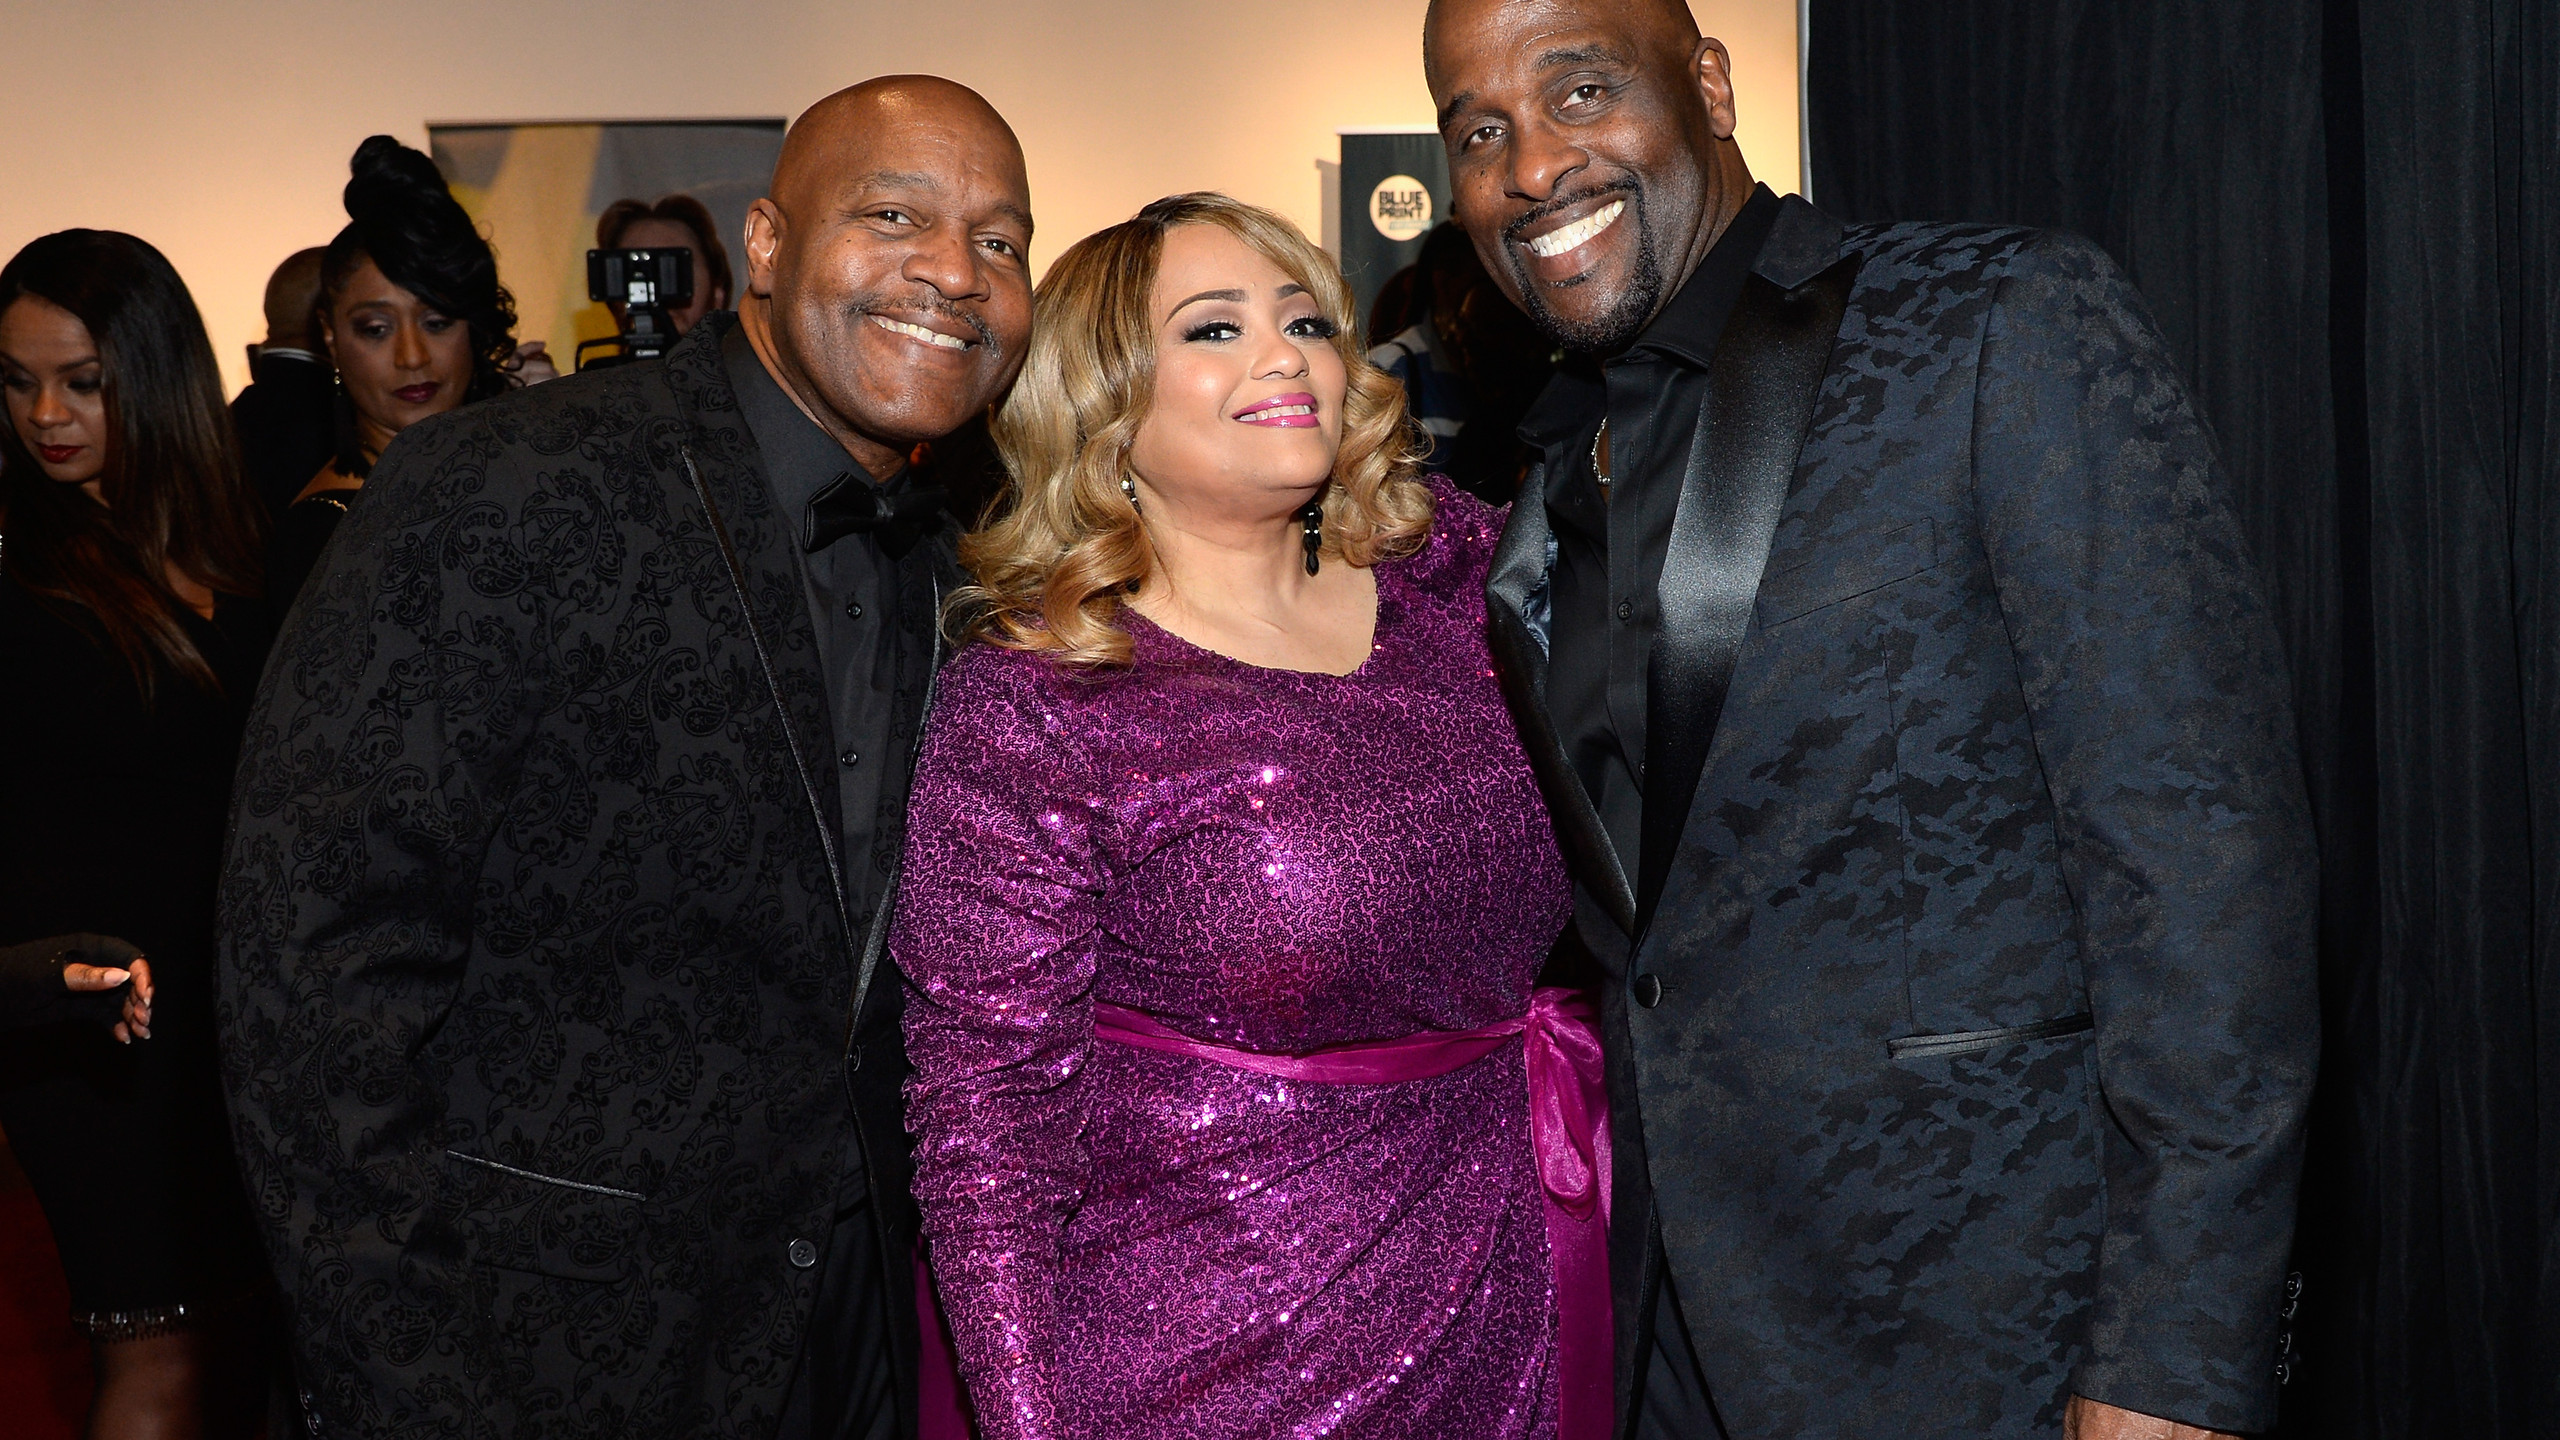 Michael and Carvin Winans with Melanie F